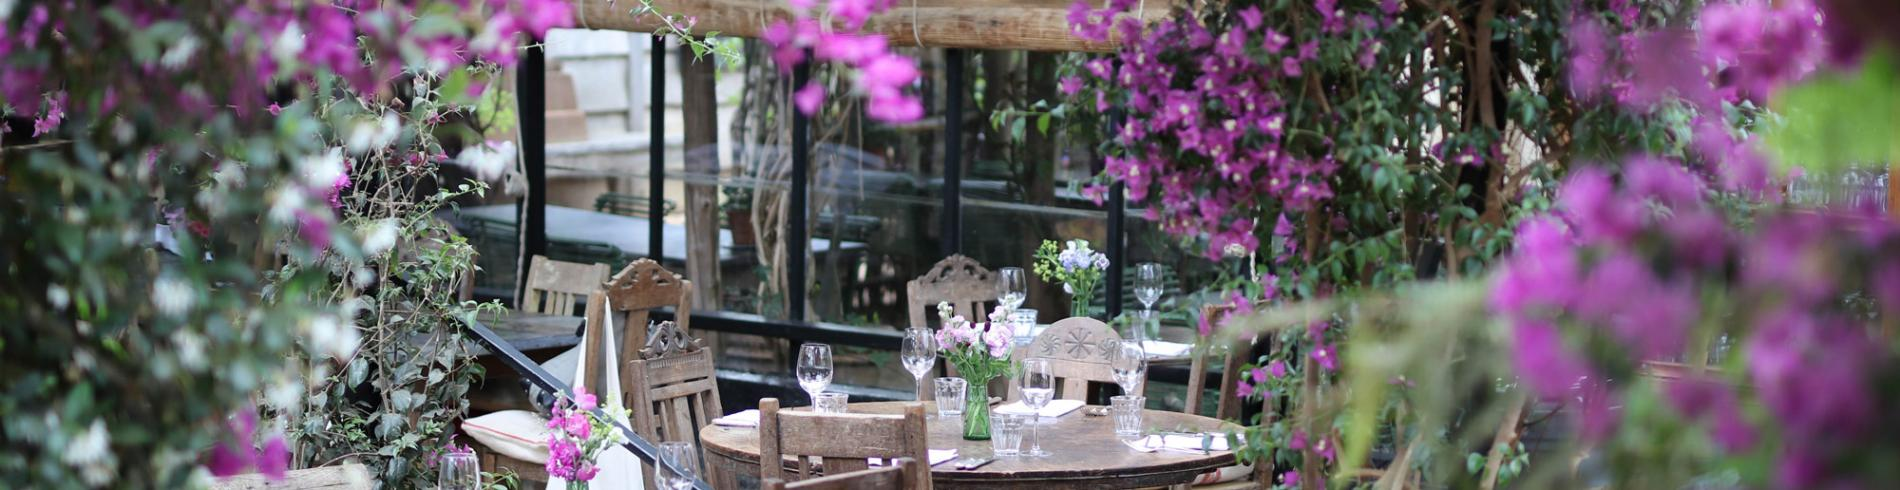 Purple flowers and dining tables at Petersham Nurseries in Richmond